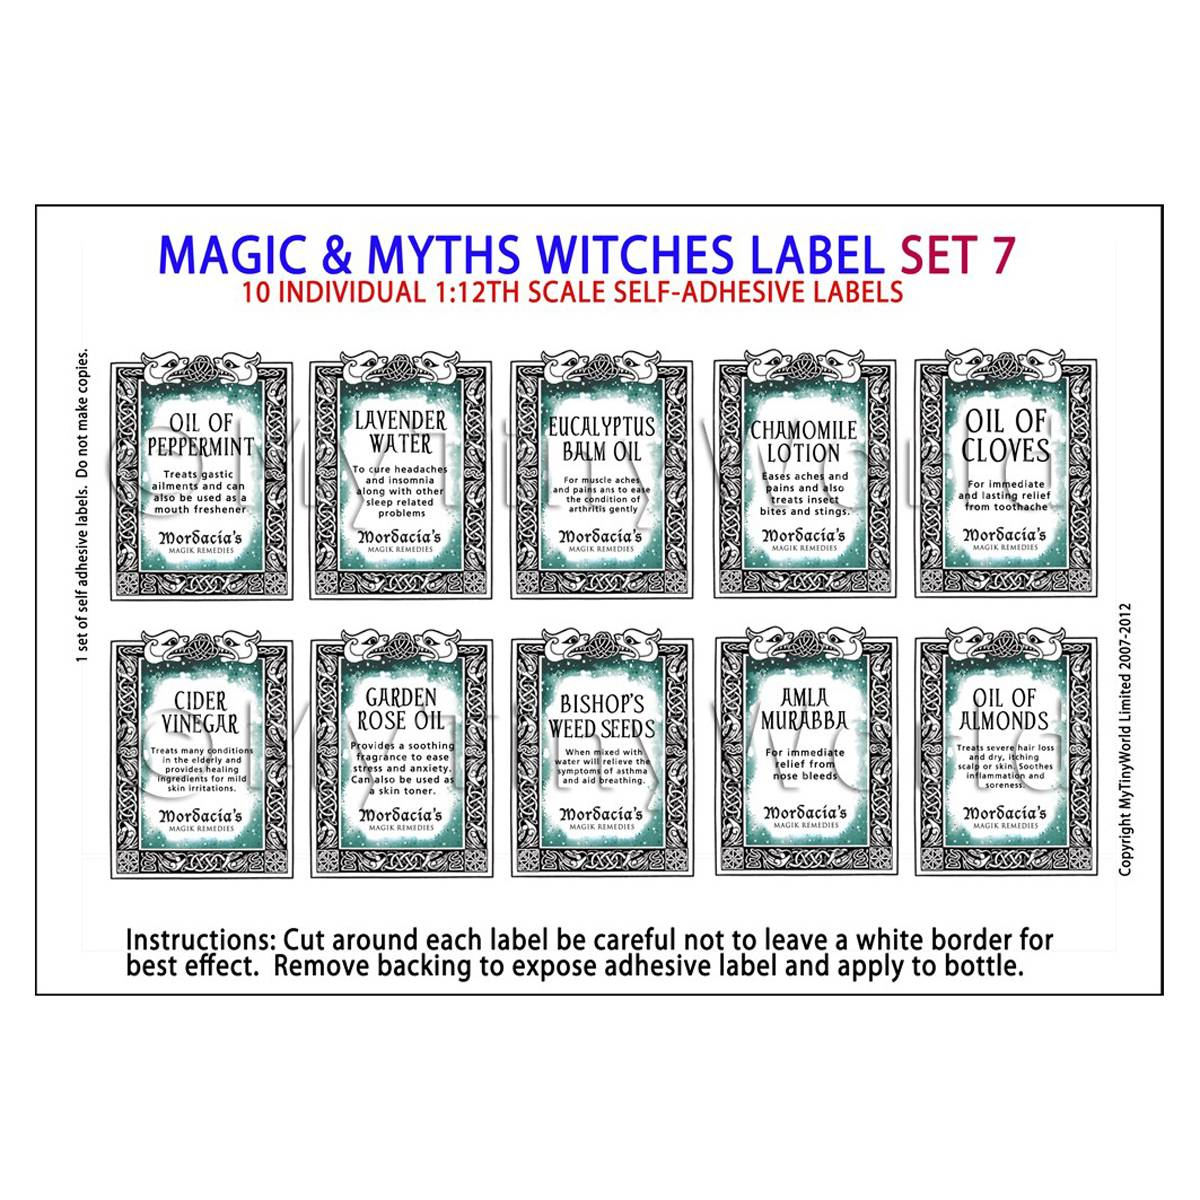 Dolls House Miniature Myth And Magic Label Set 7